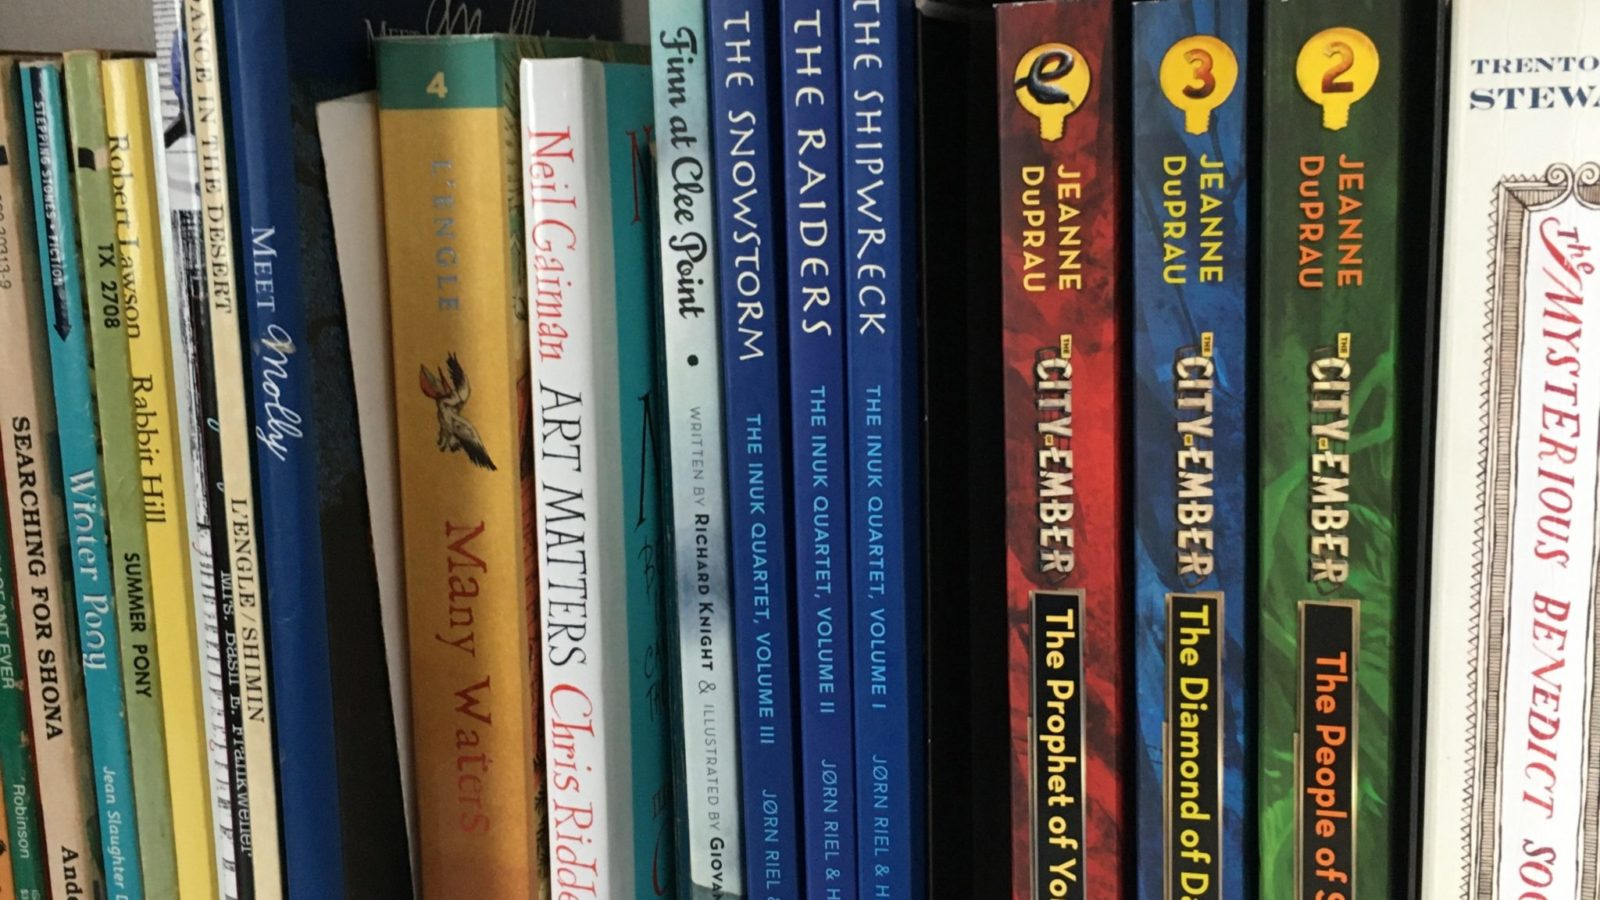 Chapter books for middle grades and young adult readers